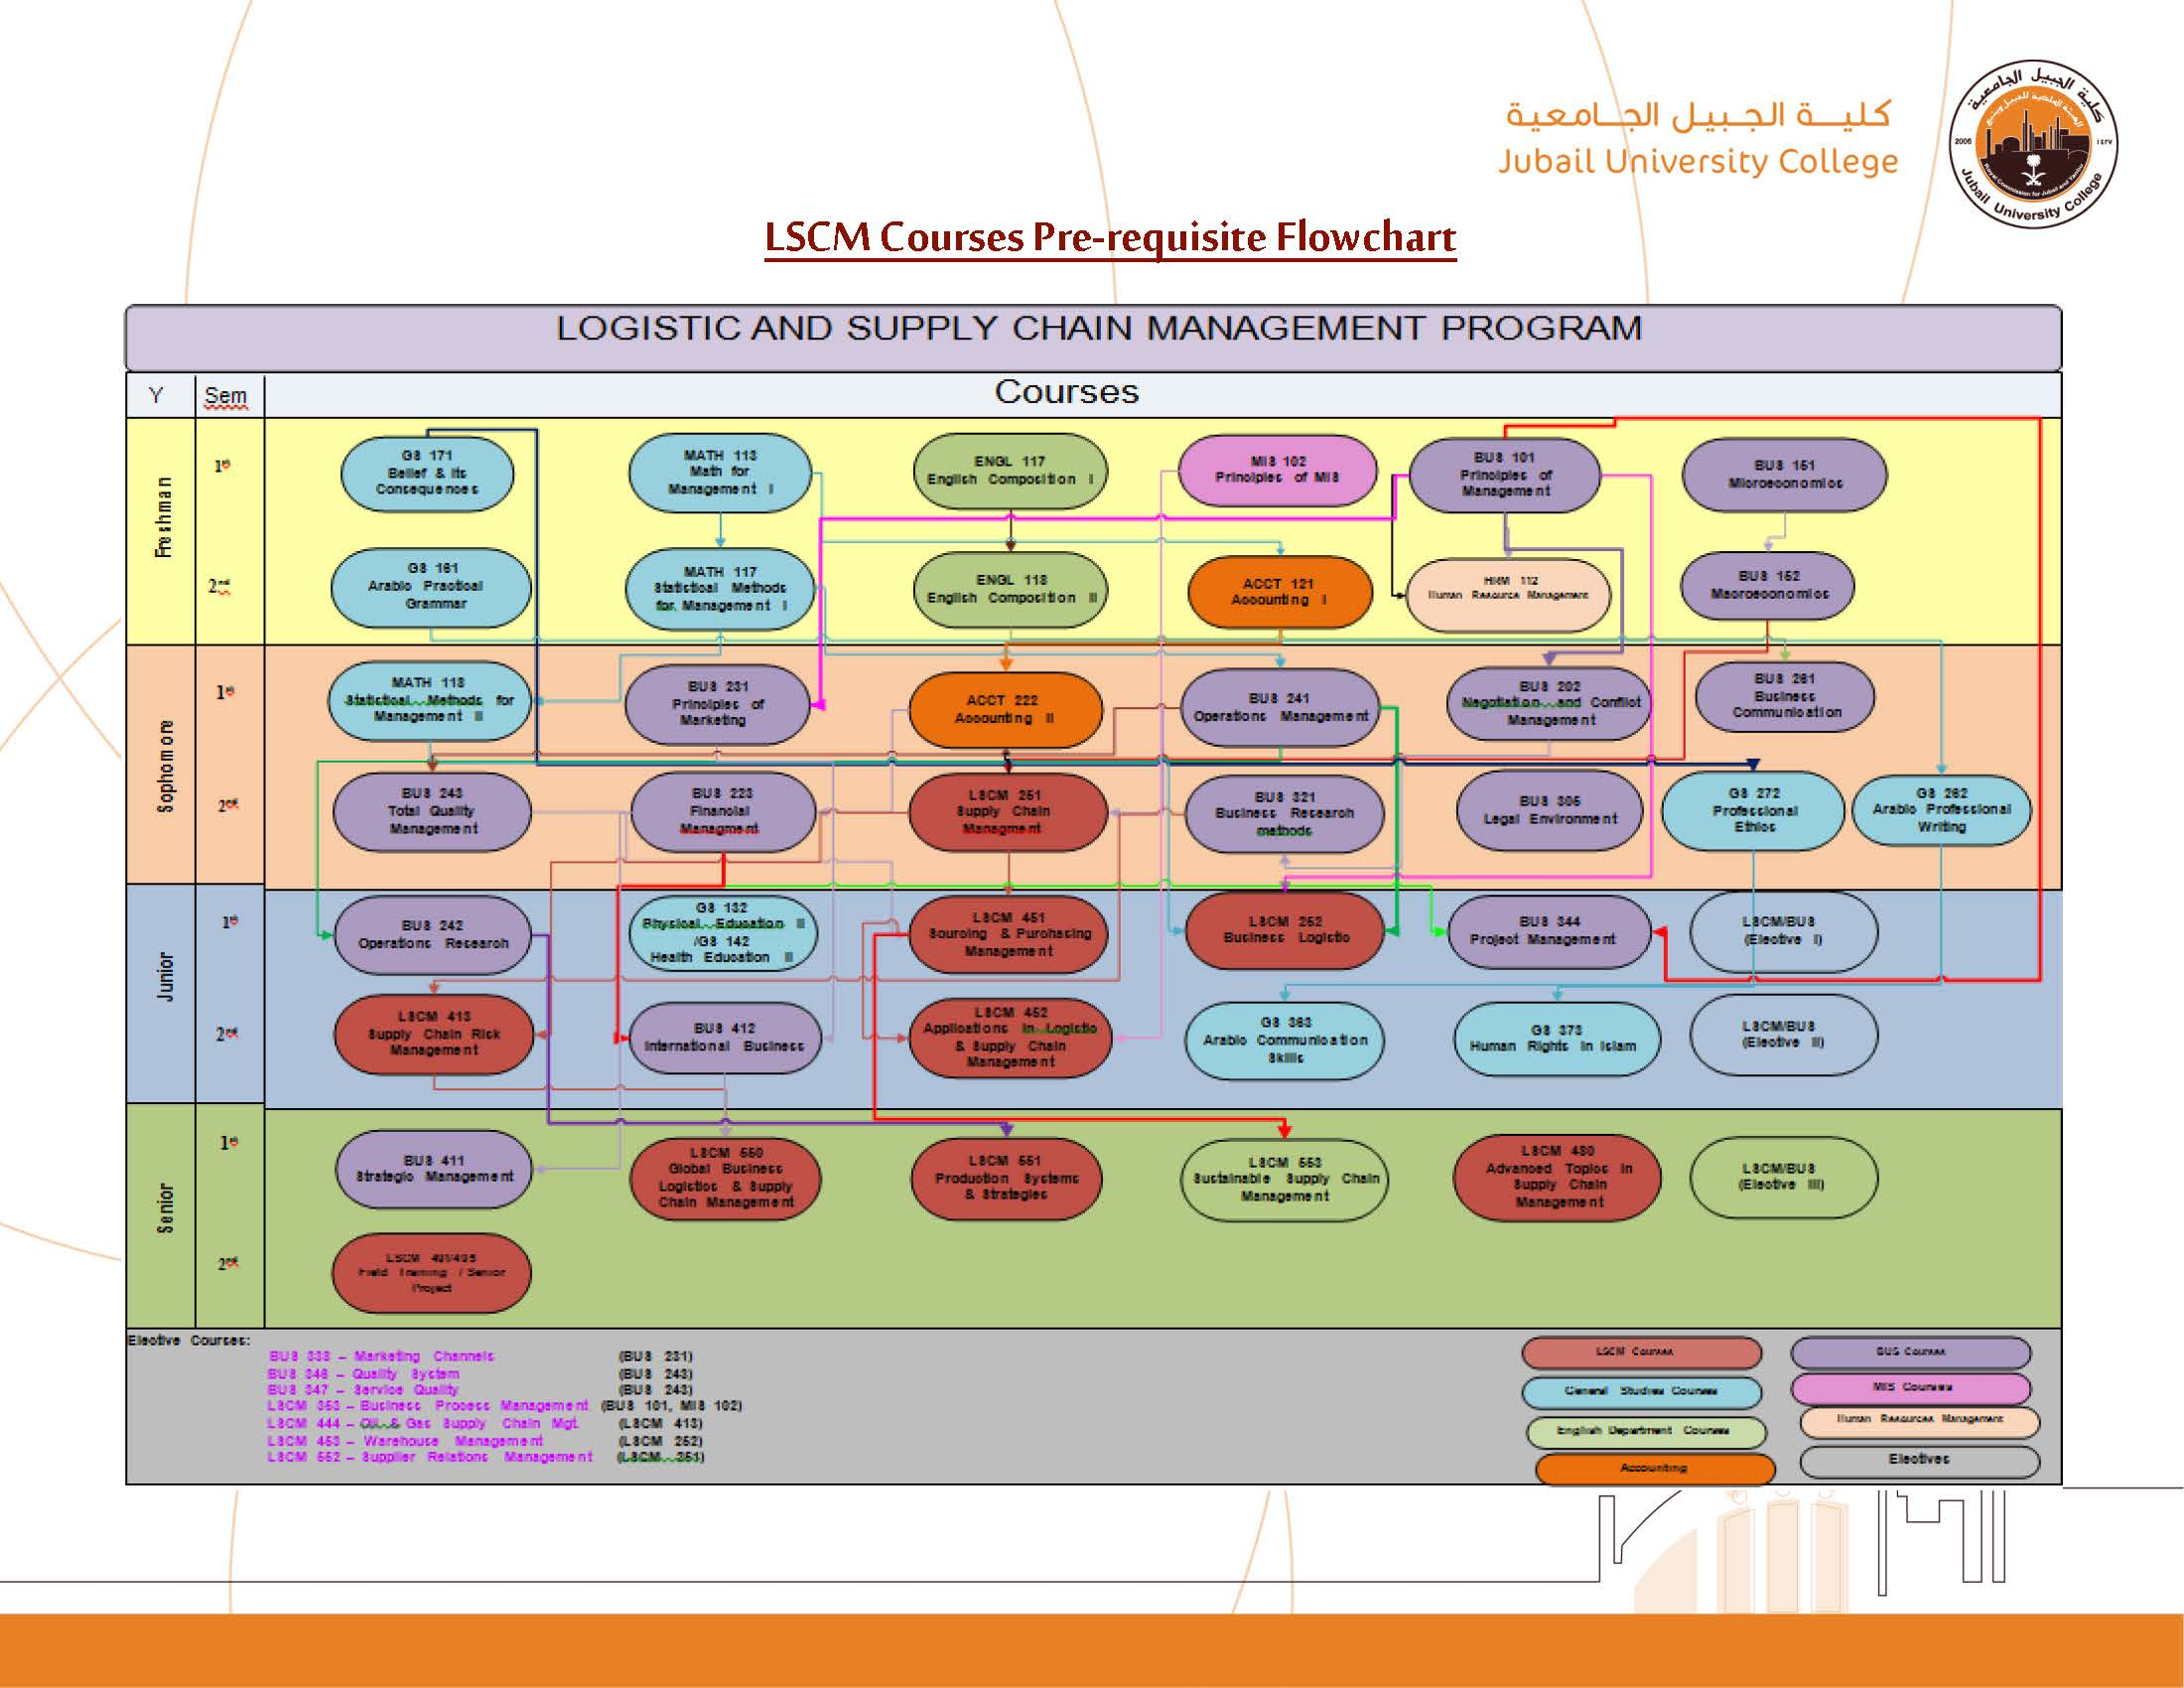 LSCM Courses Pre-requisite Flowchart.jpg